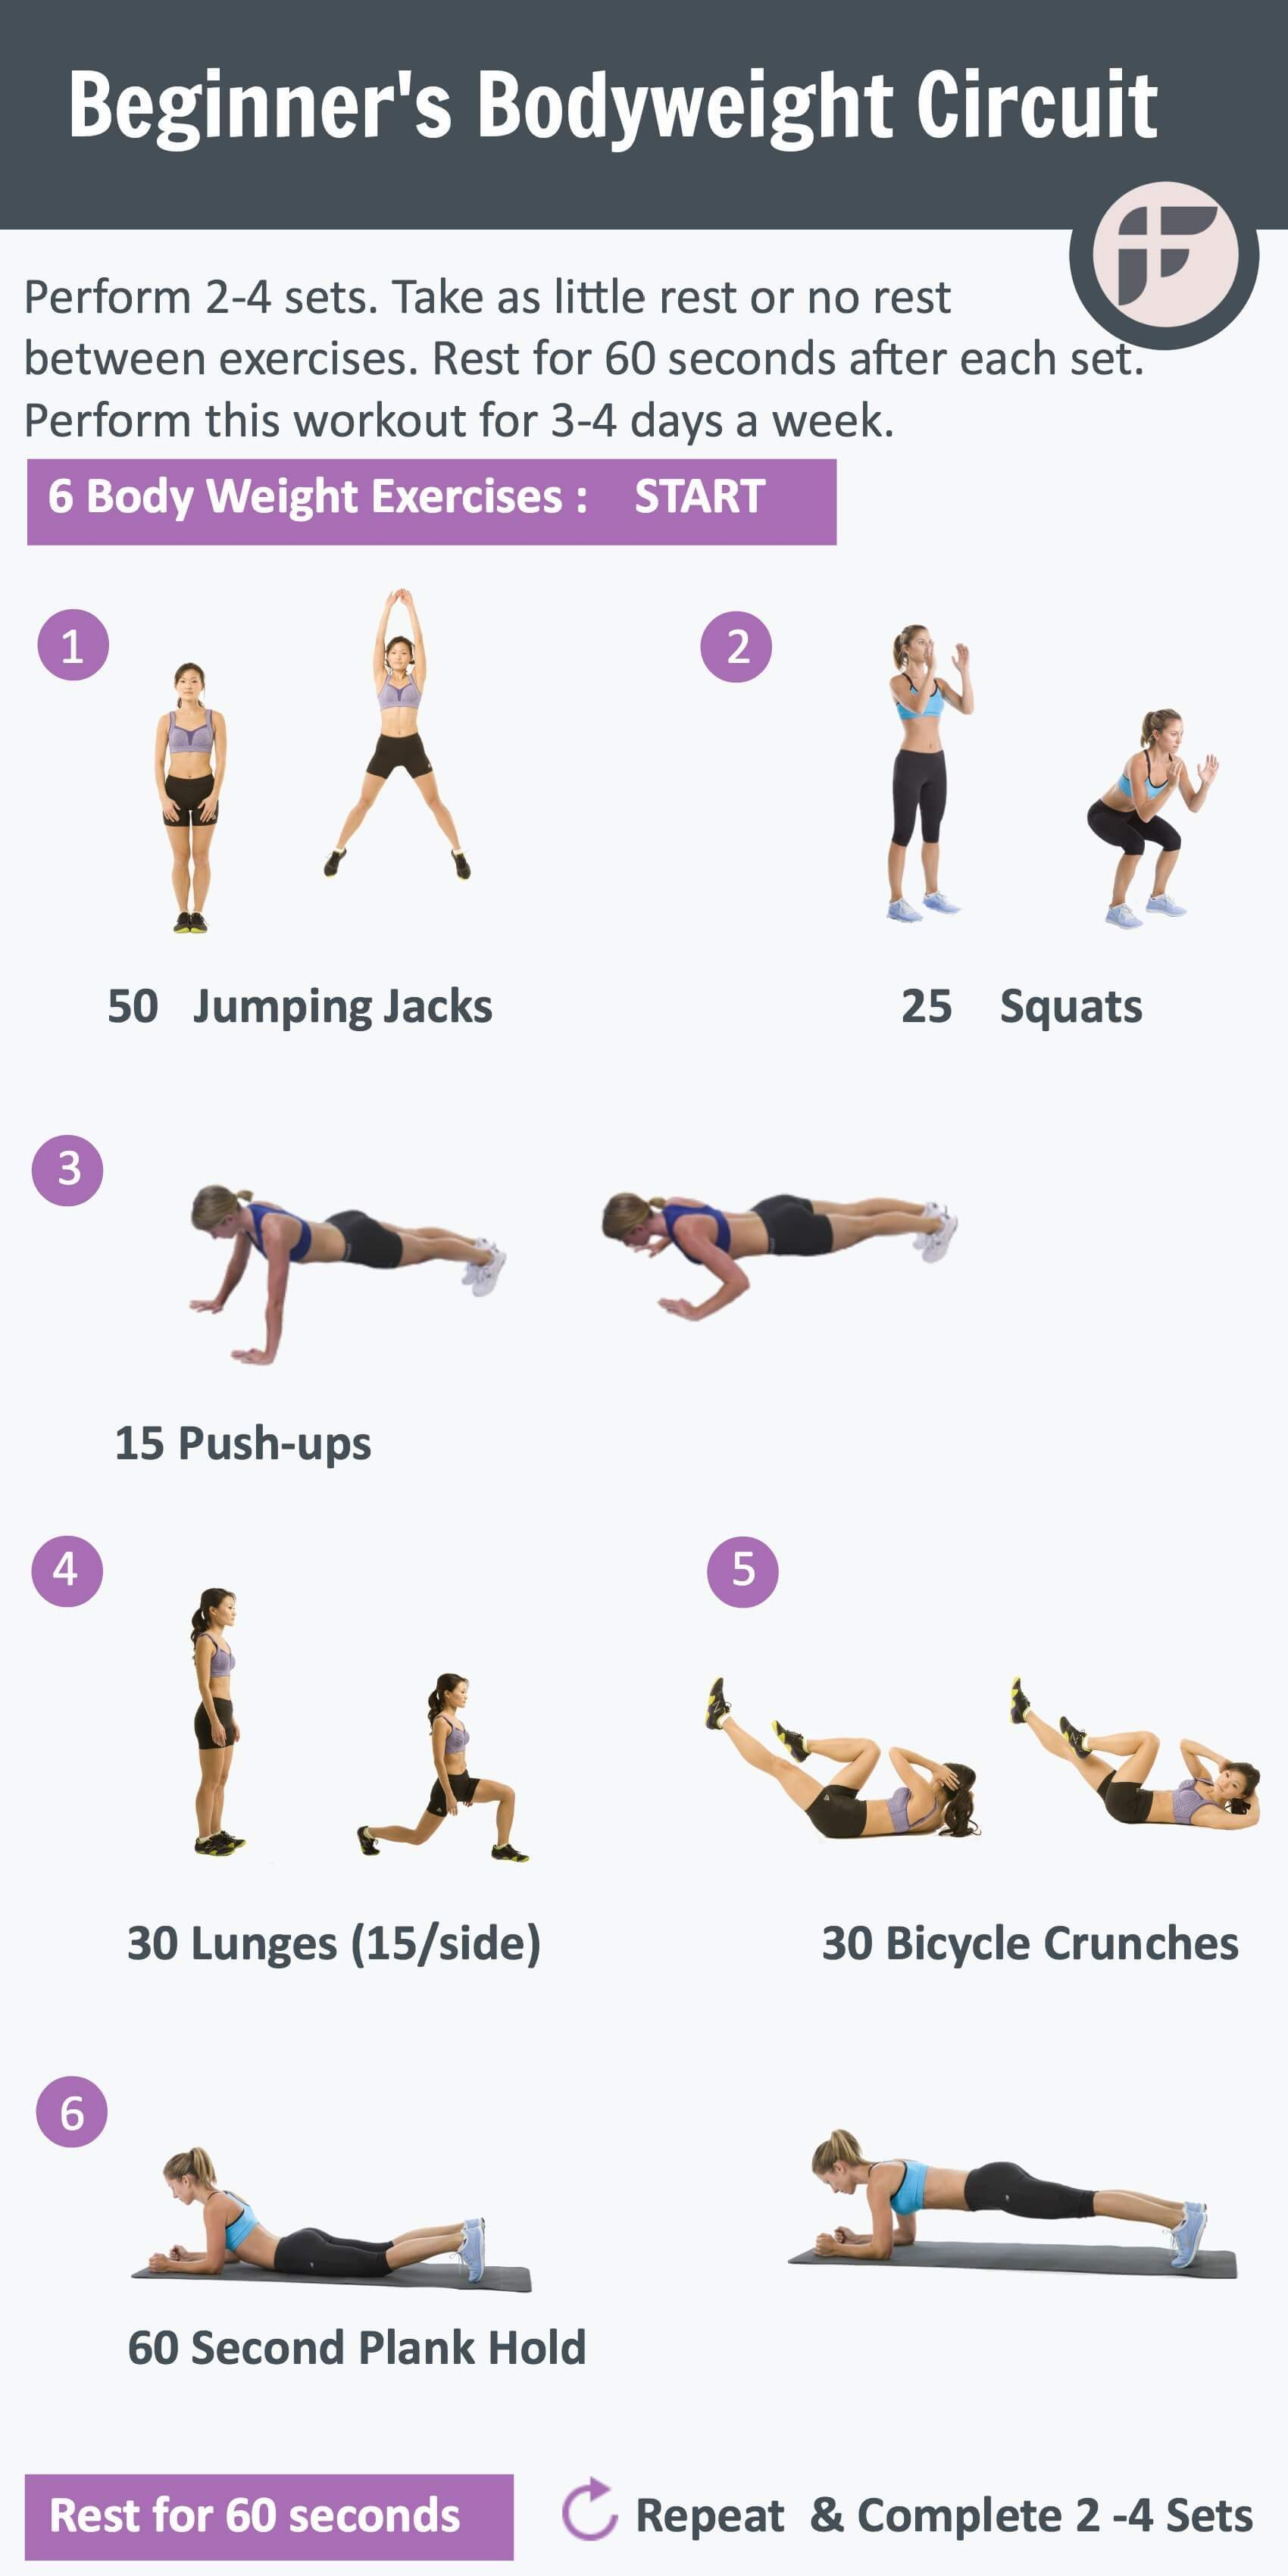 Best Bodyweight Workout For Beginners At Home Fitwirr Body Weight Circuit Body Weight Training Bodyweight Workout